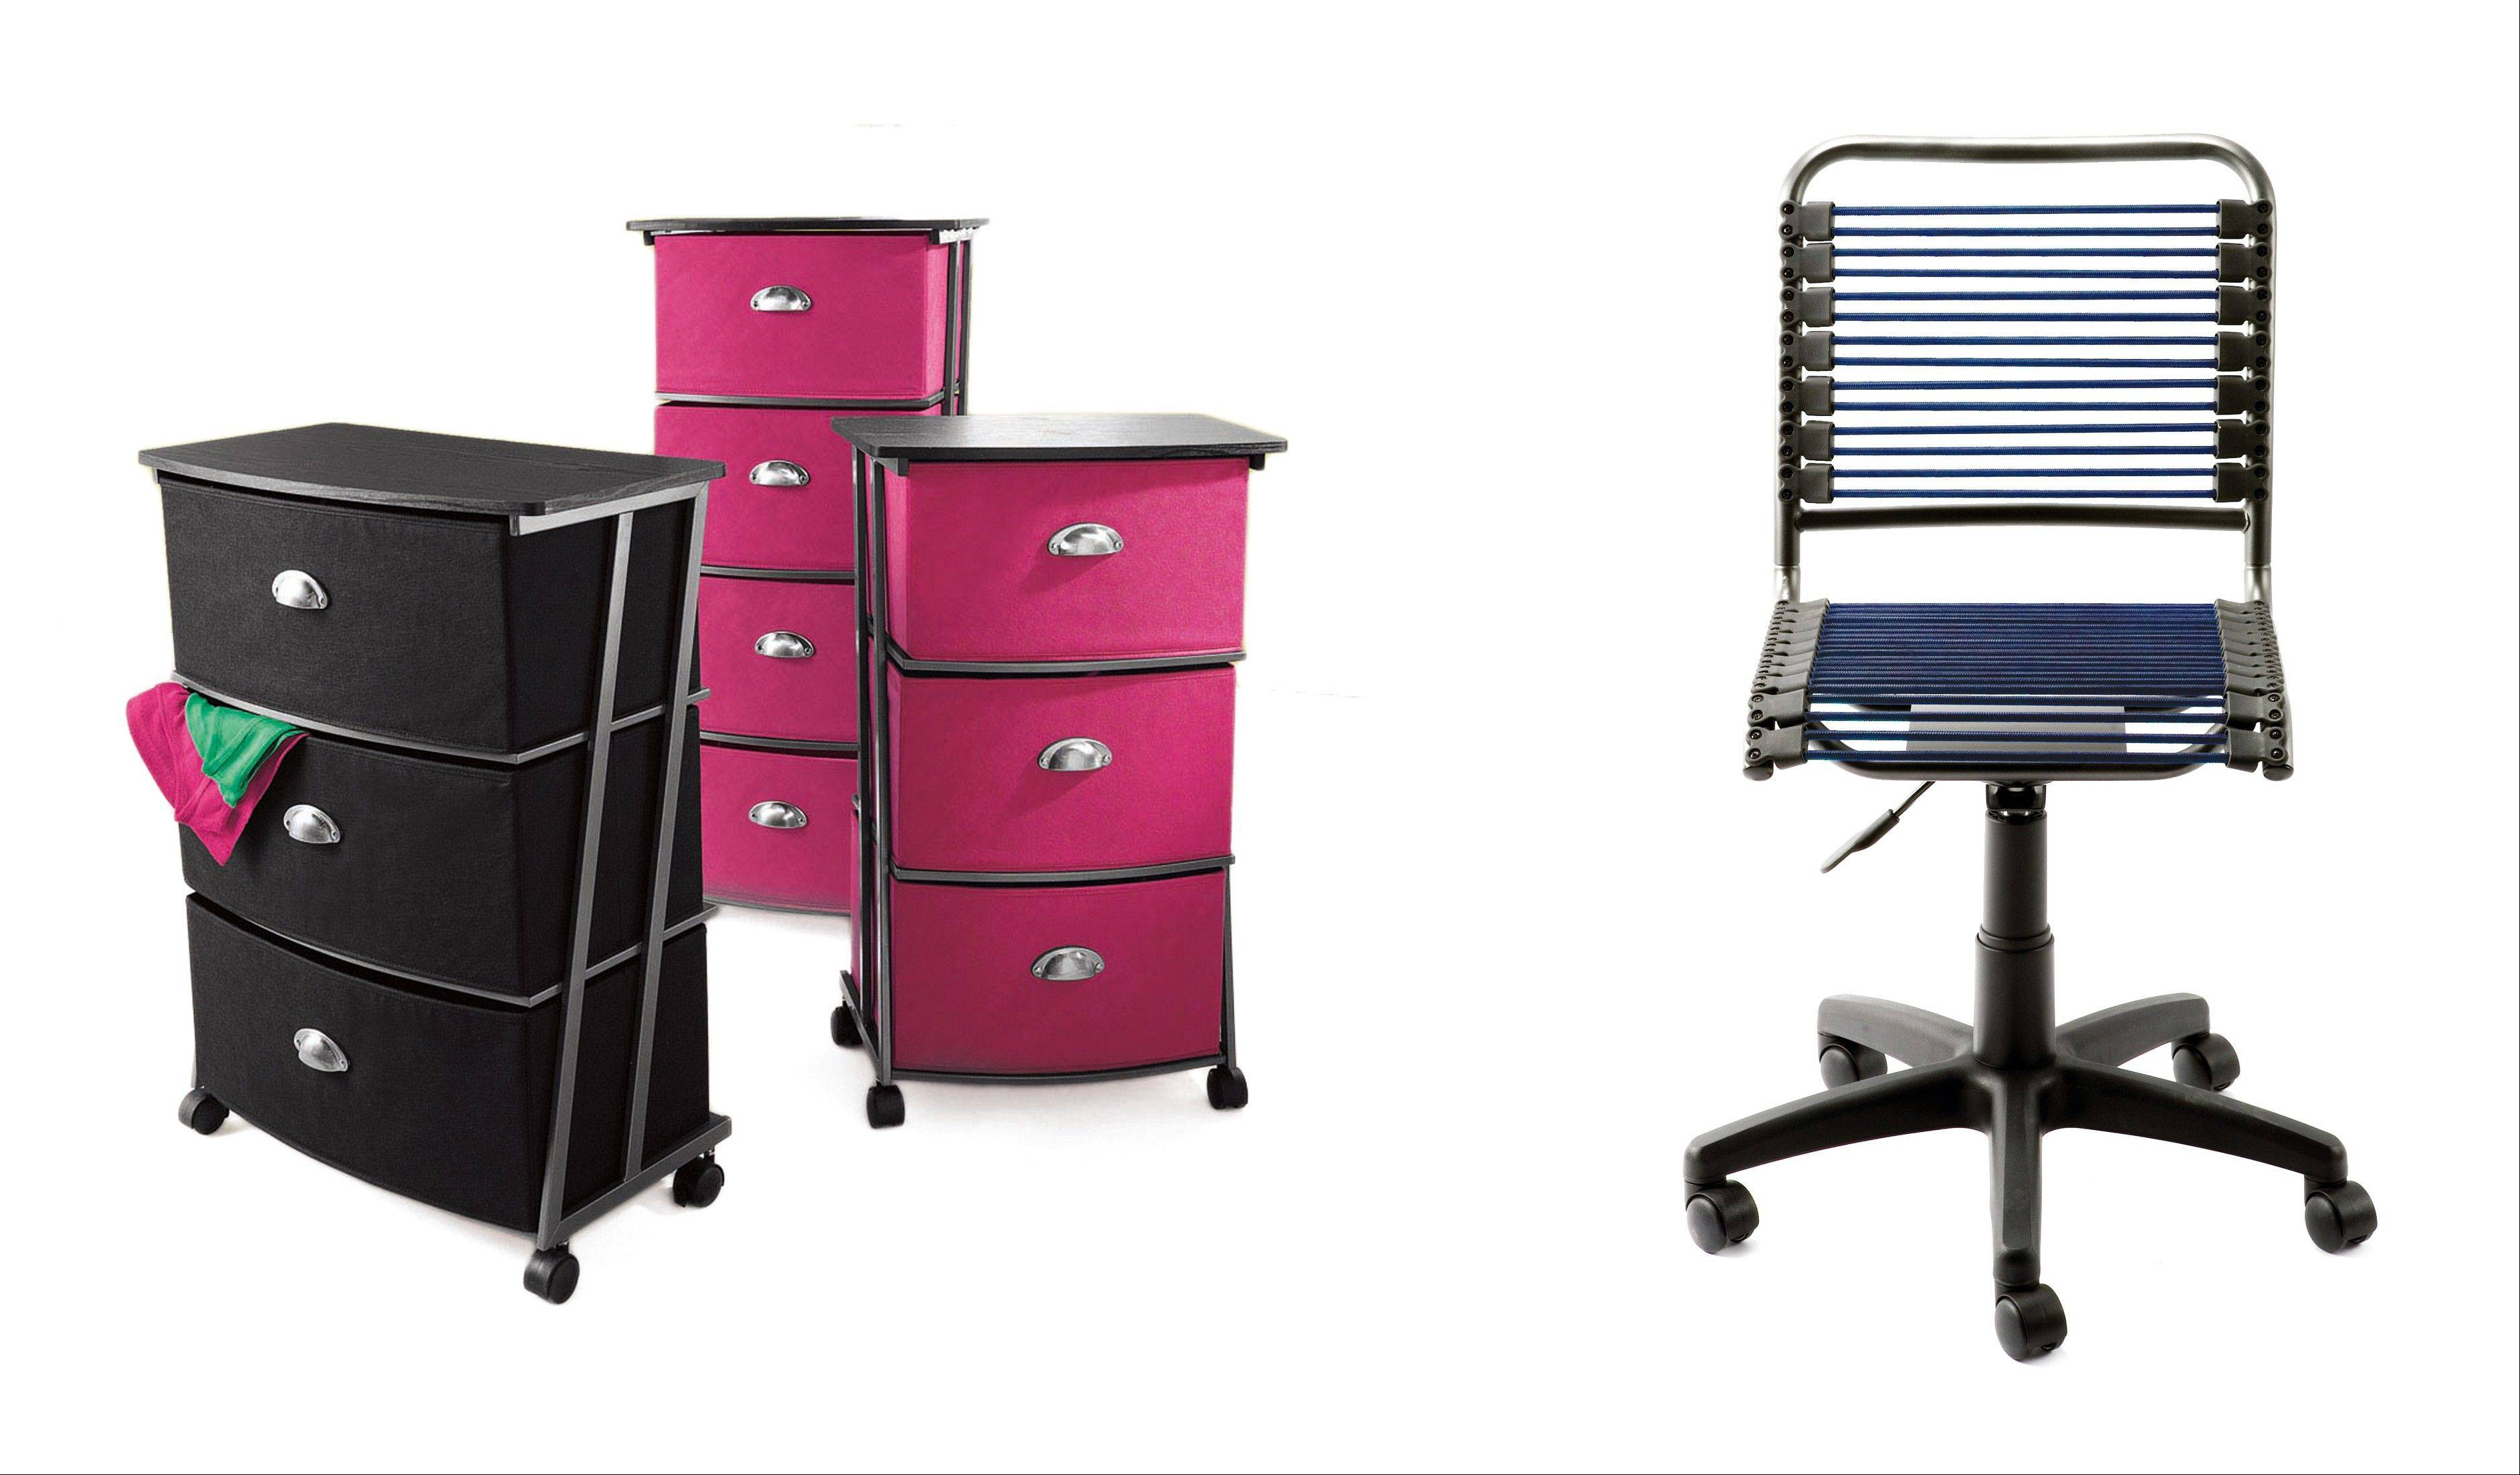 Storage units can add more space for stuff in a dorm room, and replacing the institutional desk chair makes sense in terms of comfort.